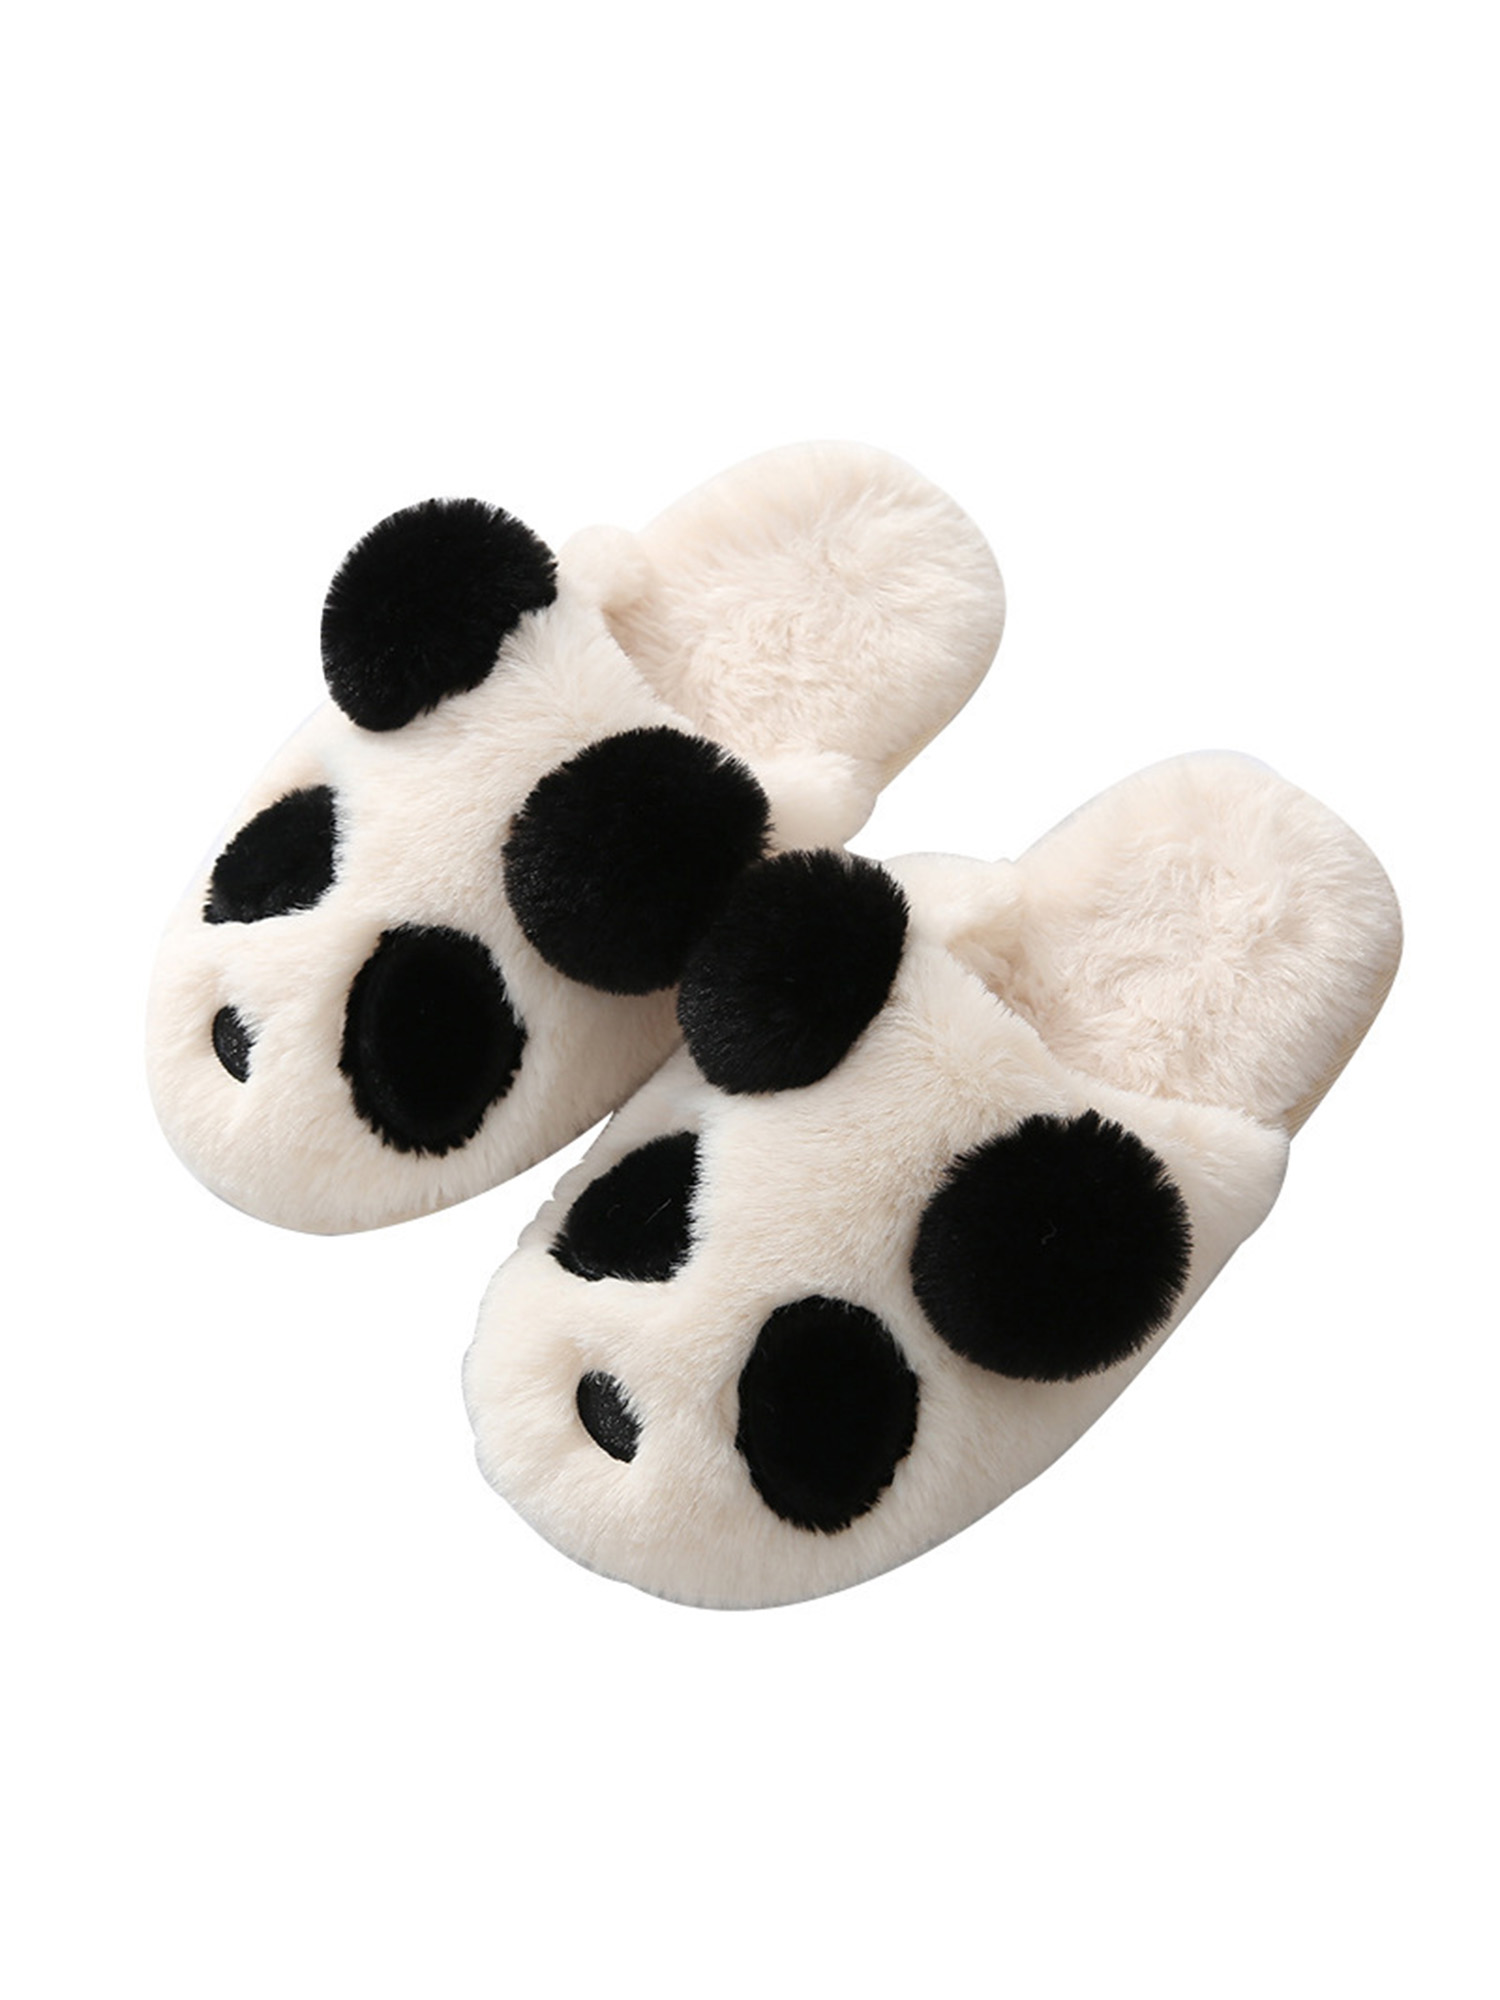 Details about  /Adults Kids Men Women Slippers Animal Claw Shoes Anti Slip Comfy Cozy Home Shoes